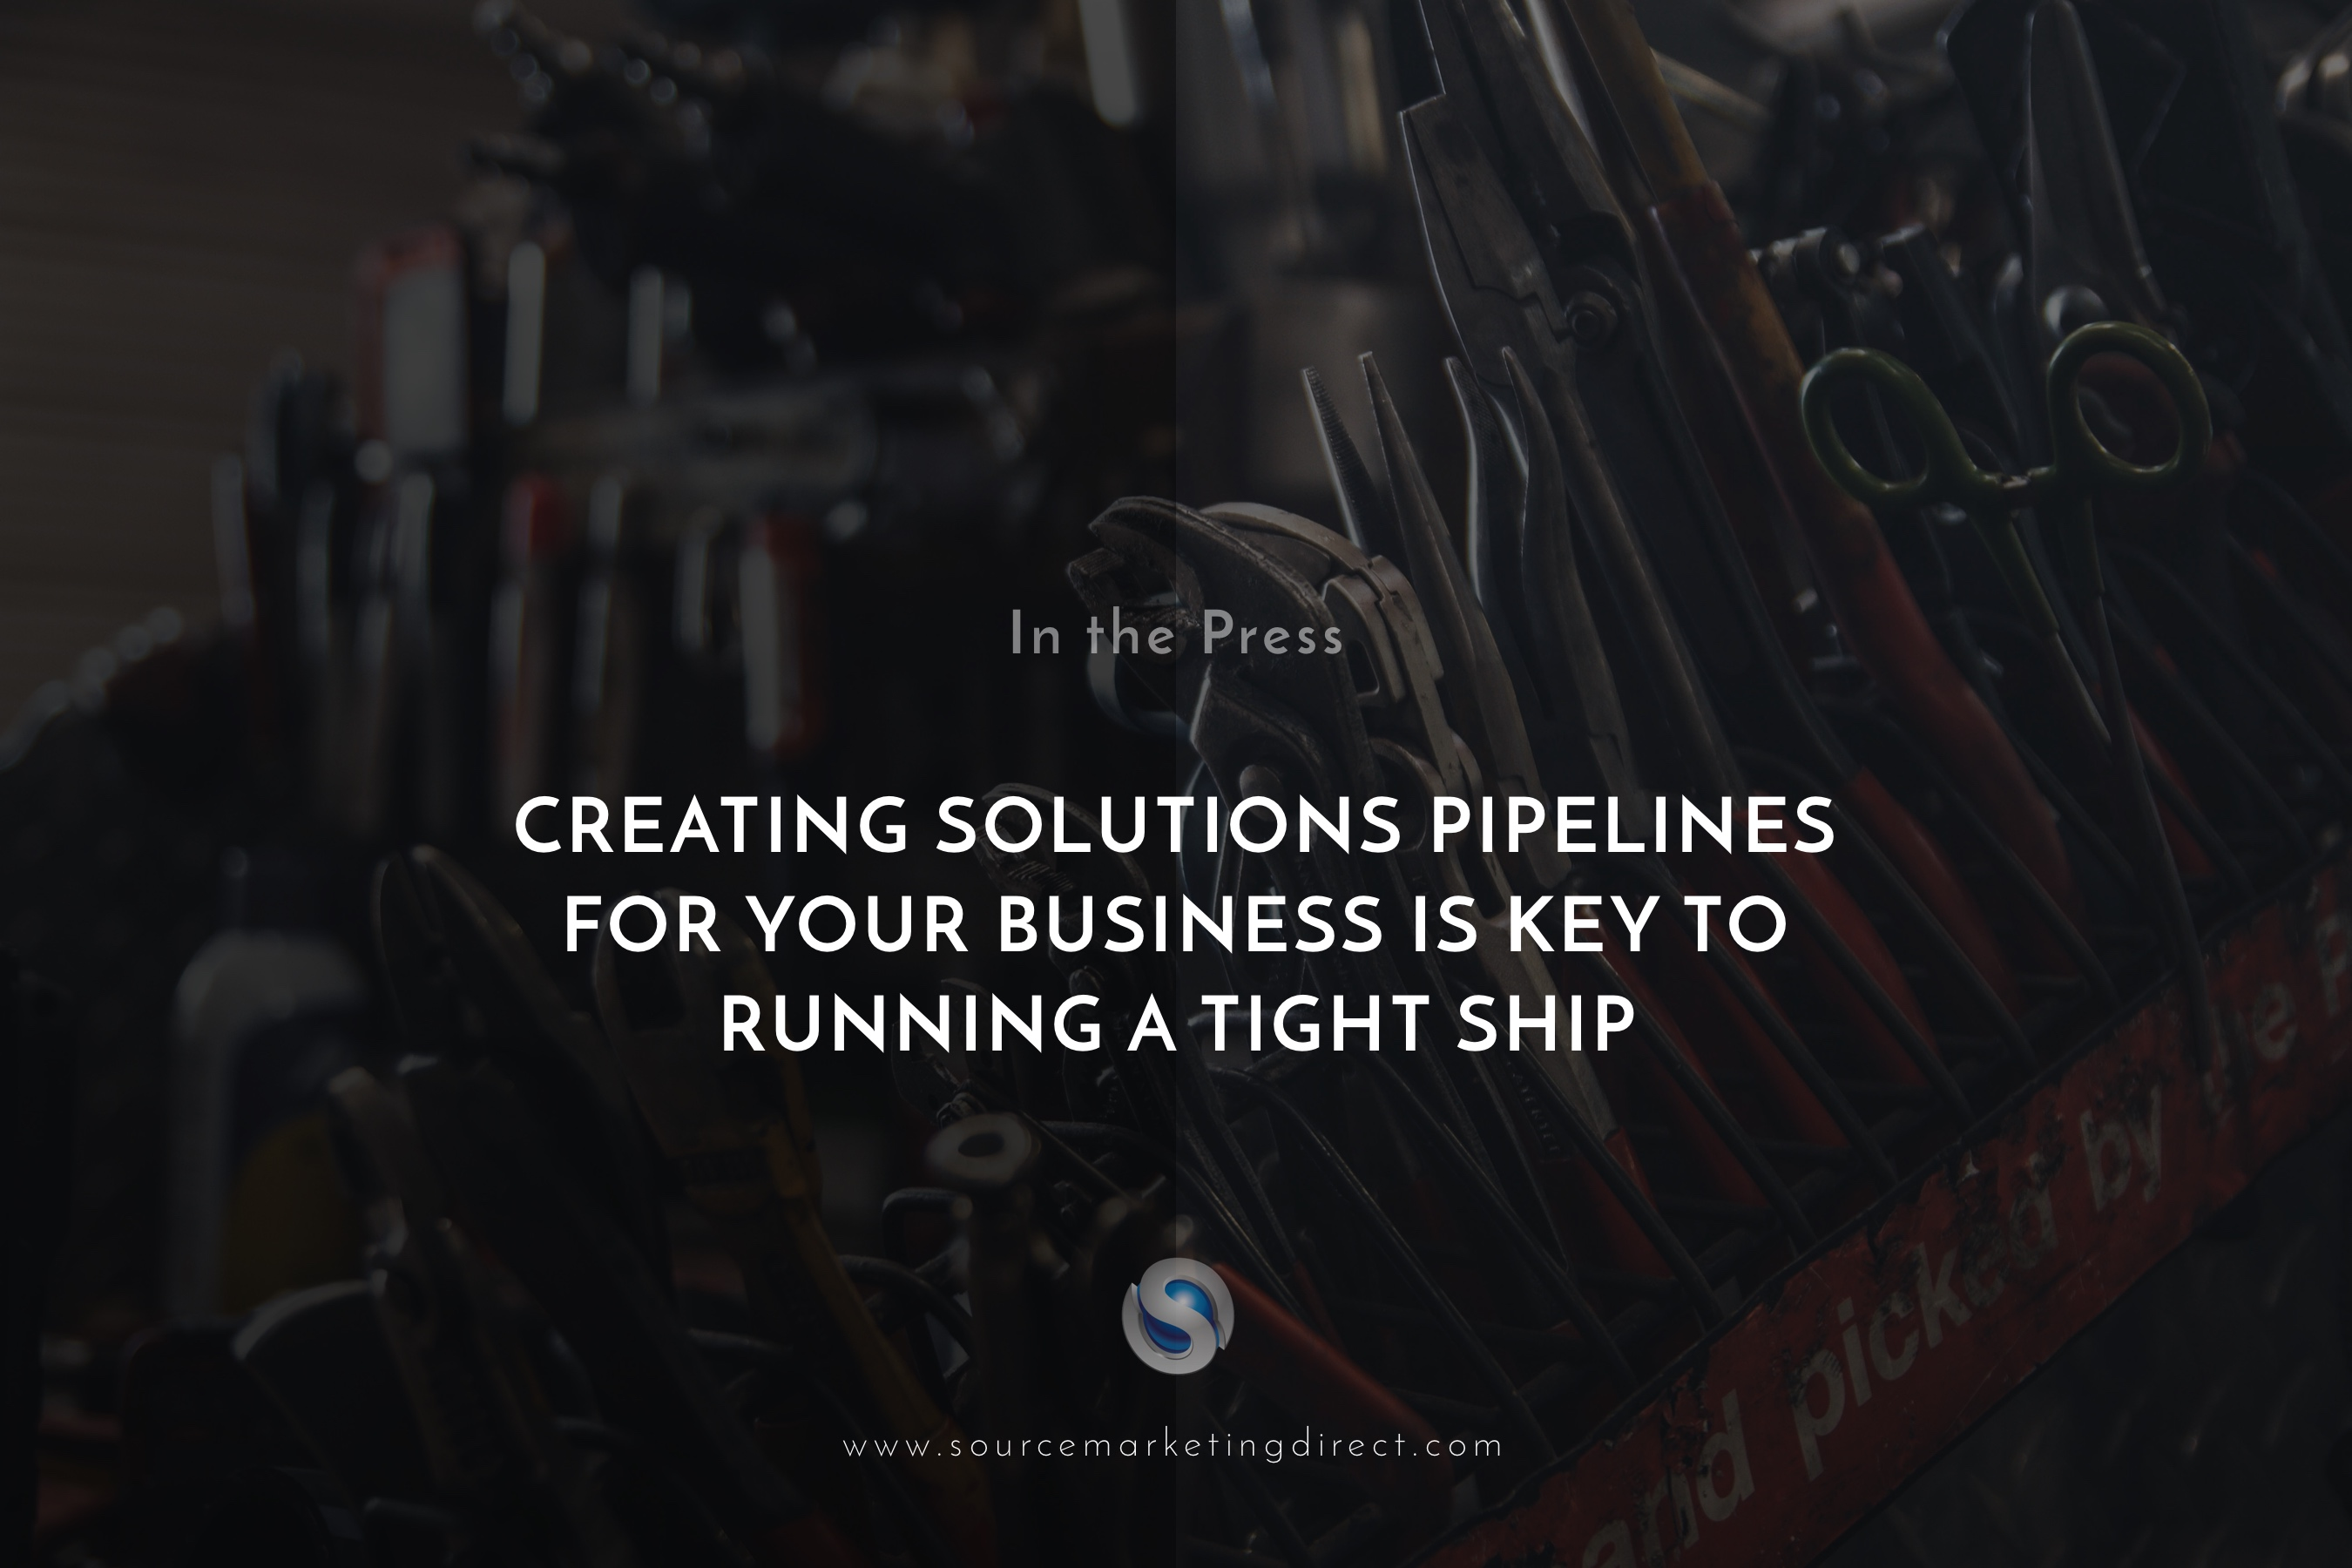 Creating solutions pipelines for your business is key to running a tight ship, argues Source Marketing Direct